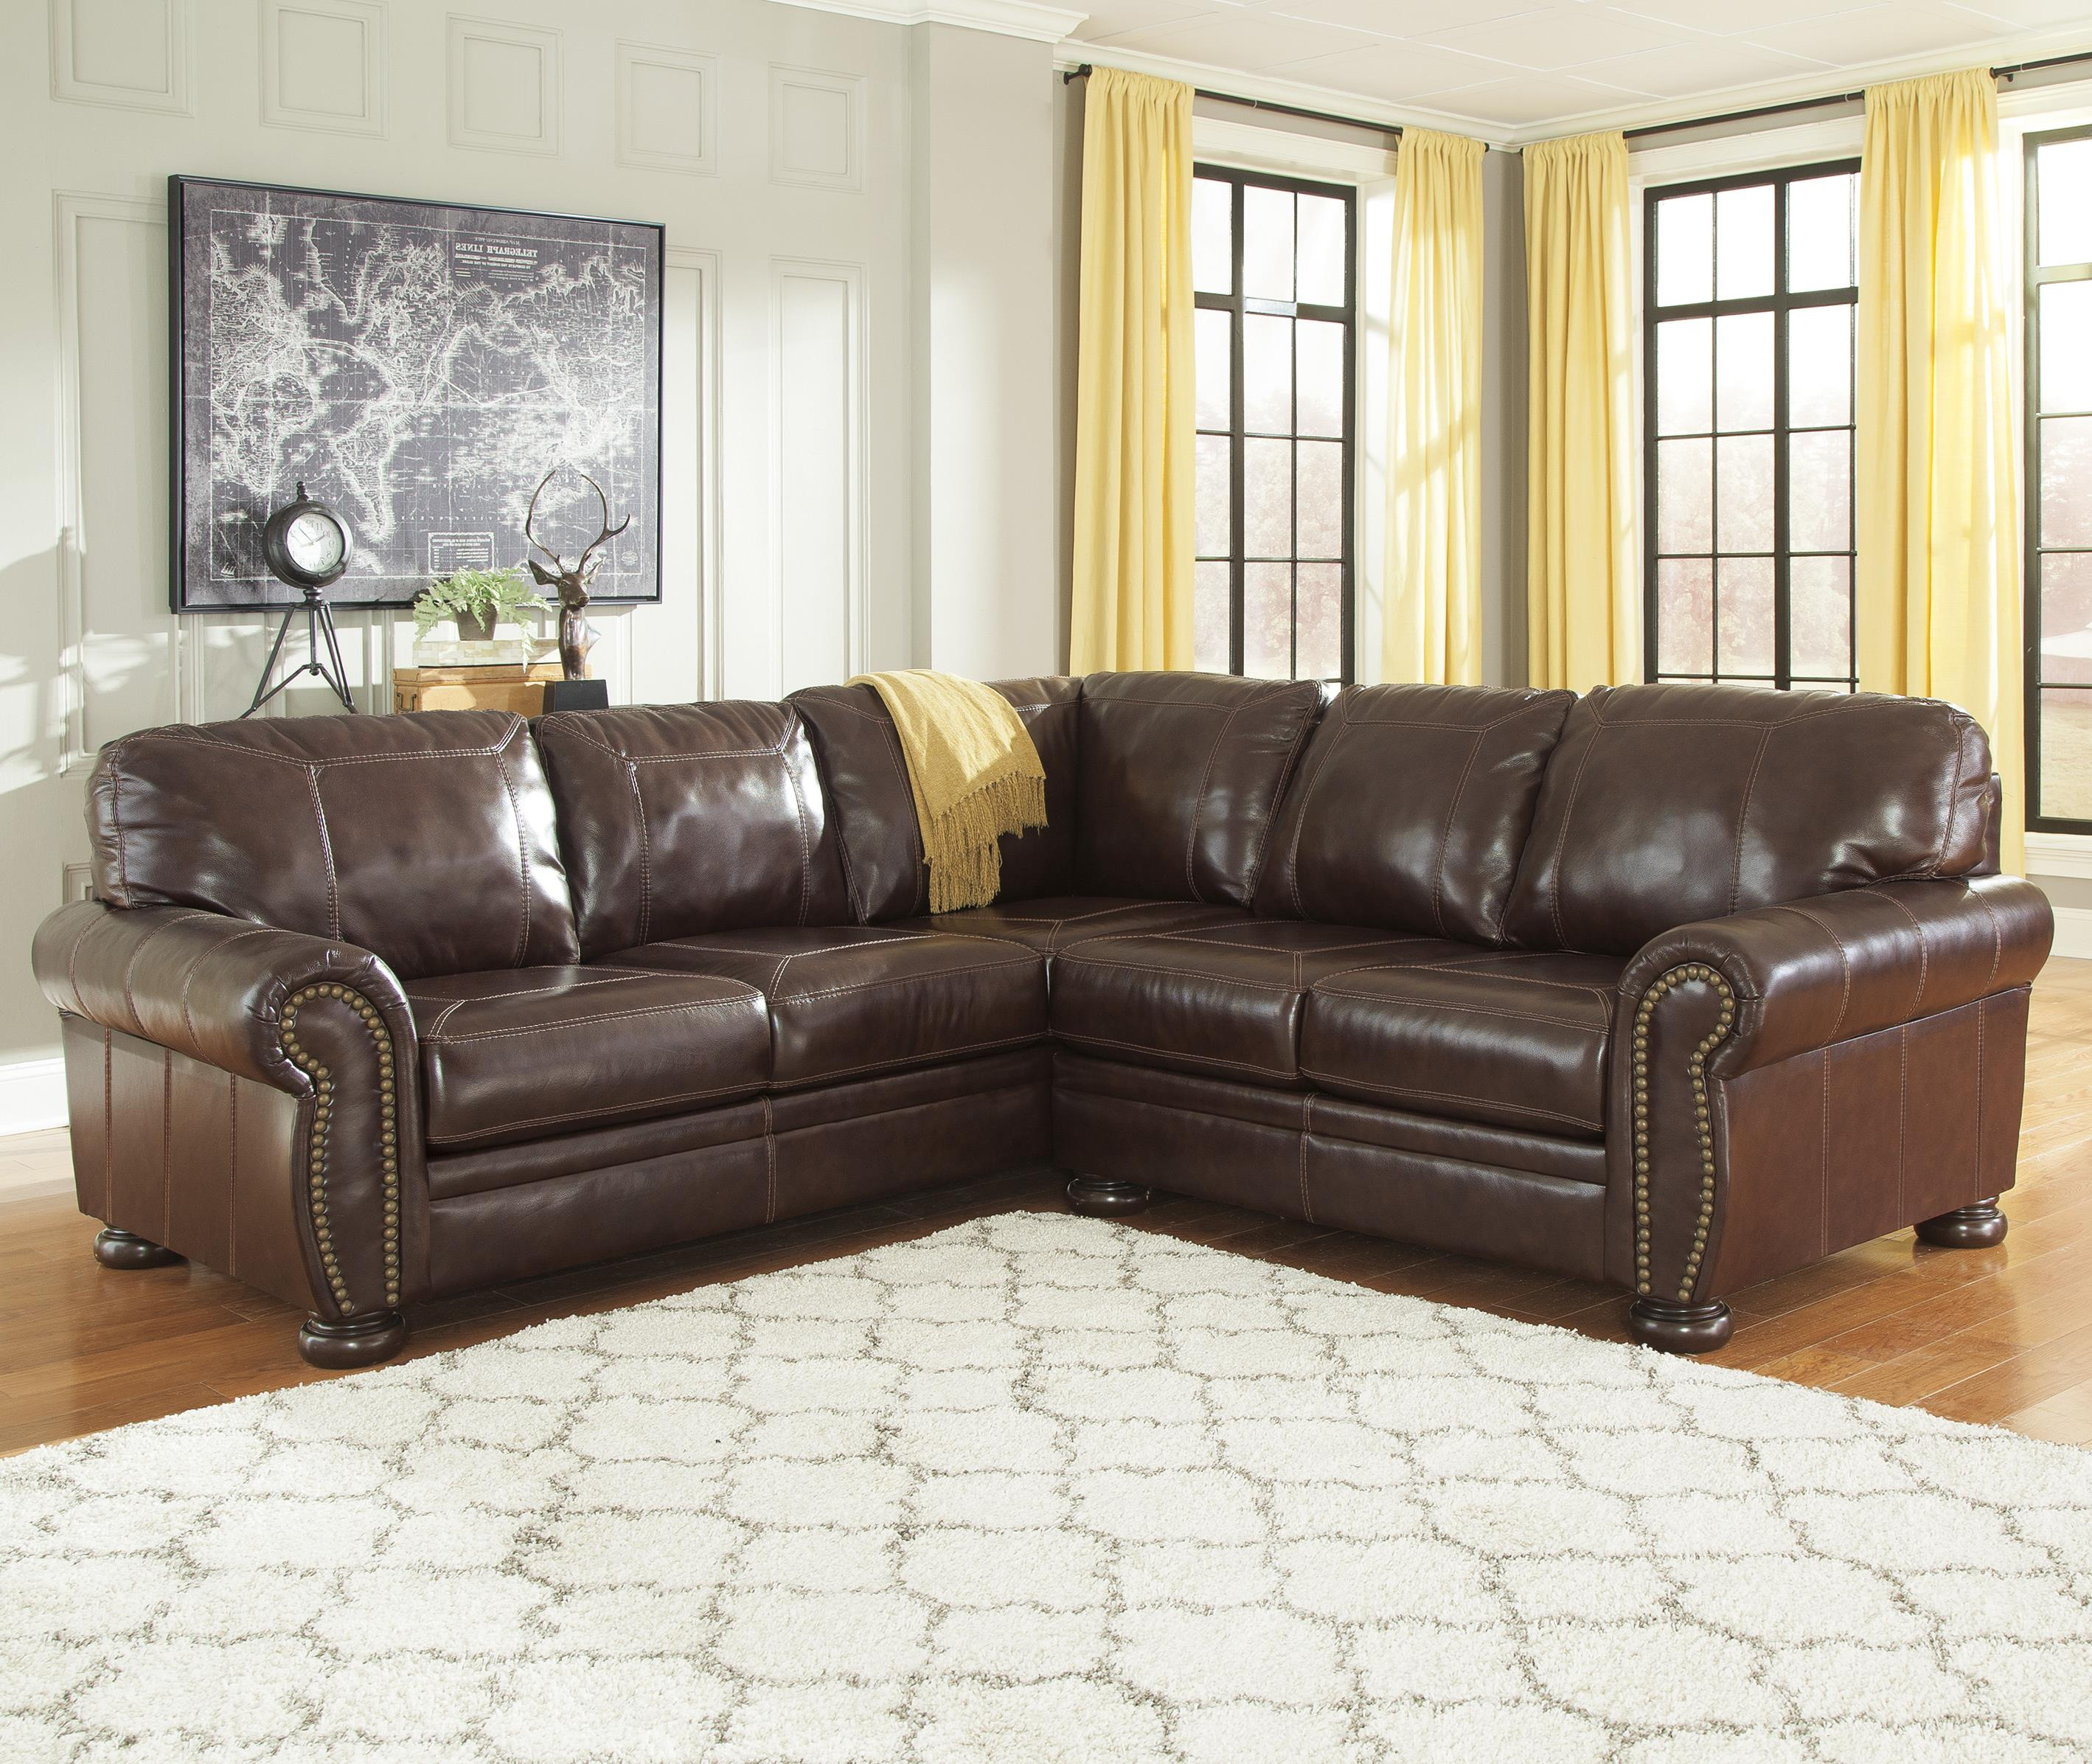 2 Piece Sectional Sofas With Recliners Baci Living Room